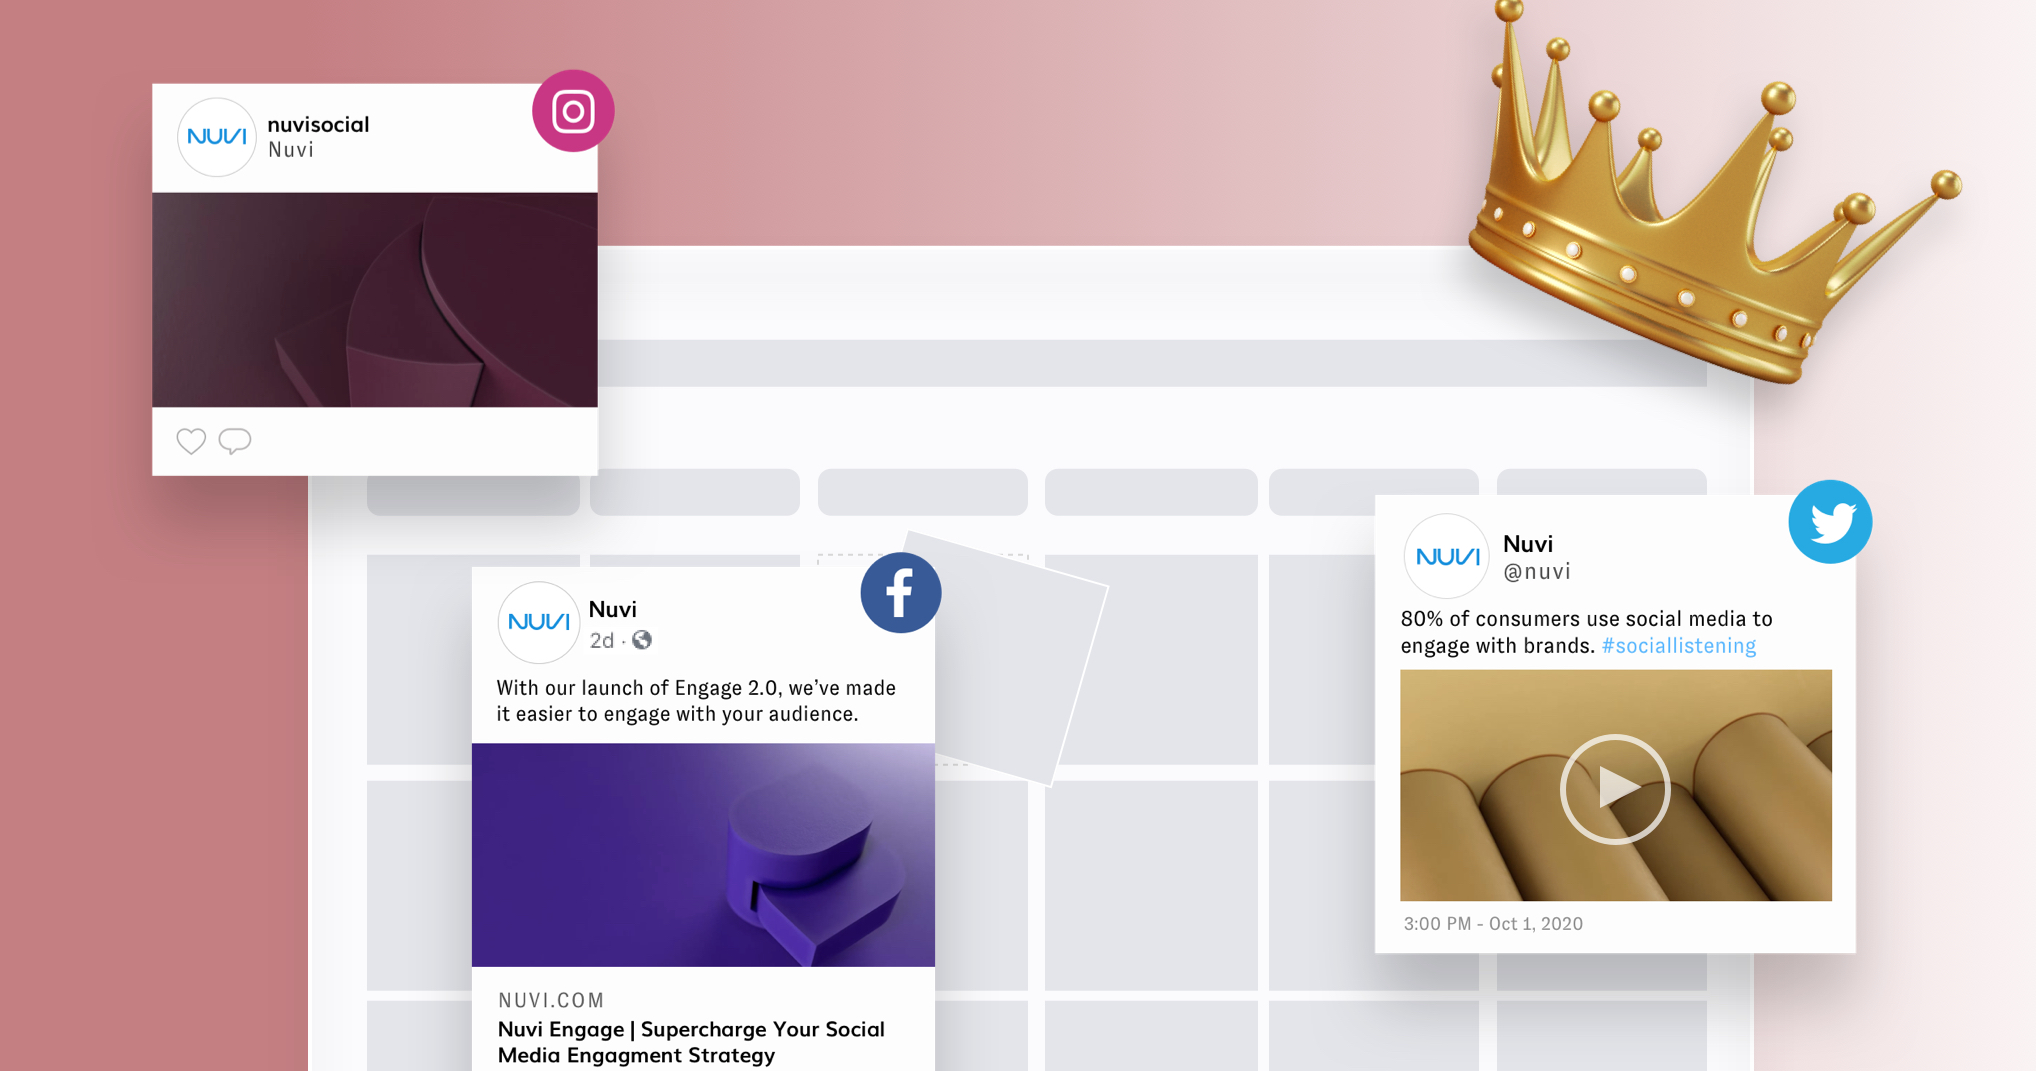 A content calendar, with grayed out boxes for the days, over the top of the calendar are three social posts with various image and text. On the top right corner is a gold crown, representing that content is king